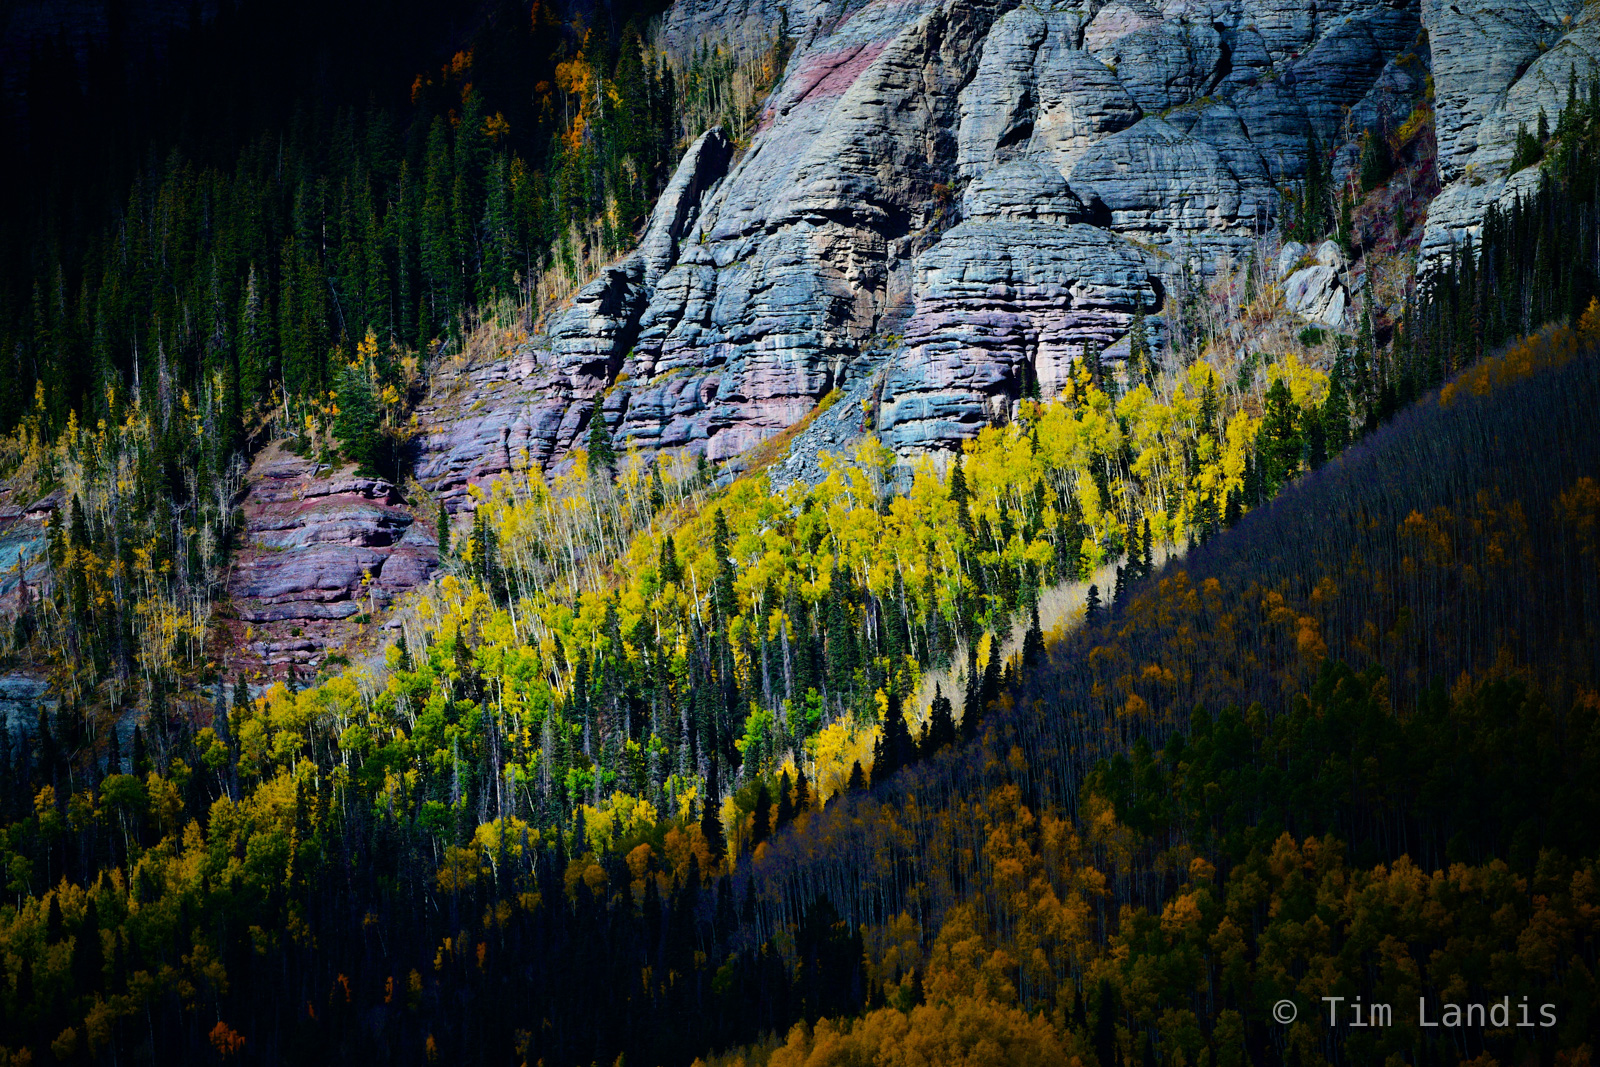 Cliffs above aspens, fall colors, rugged landscape, textures, photo